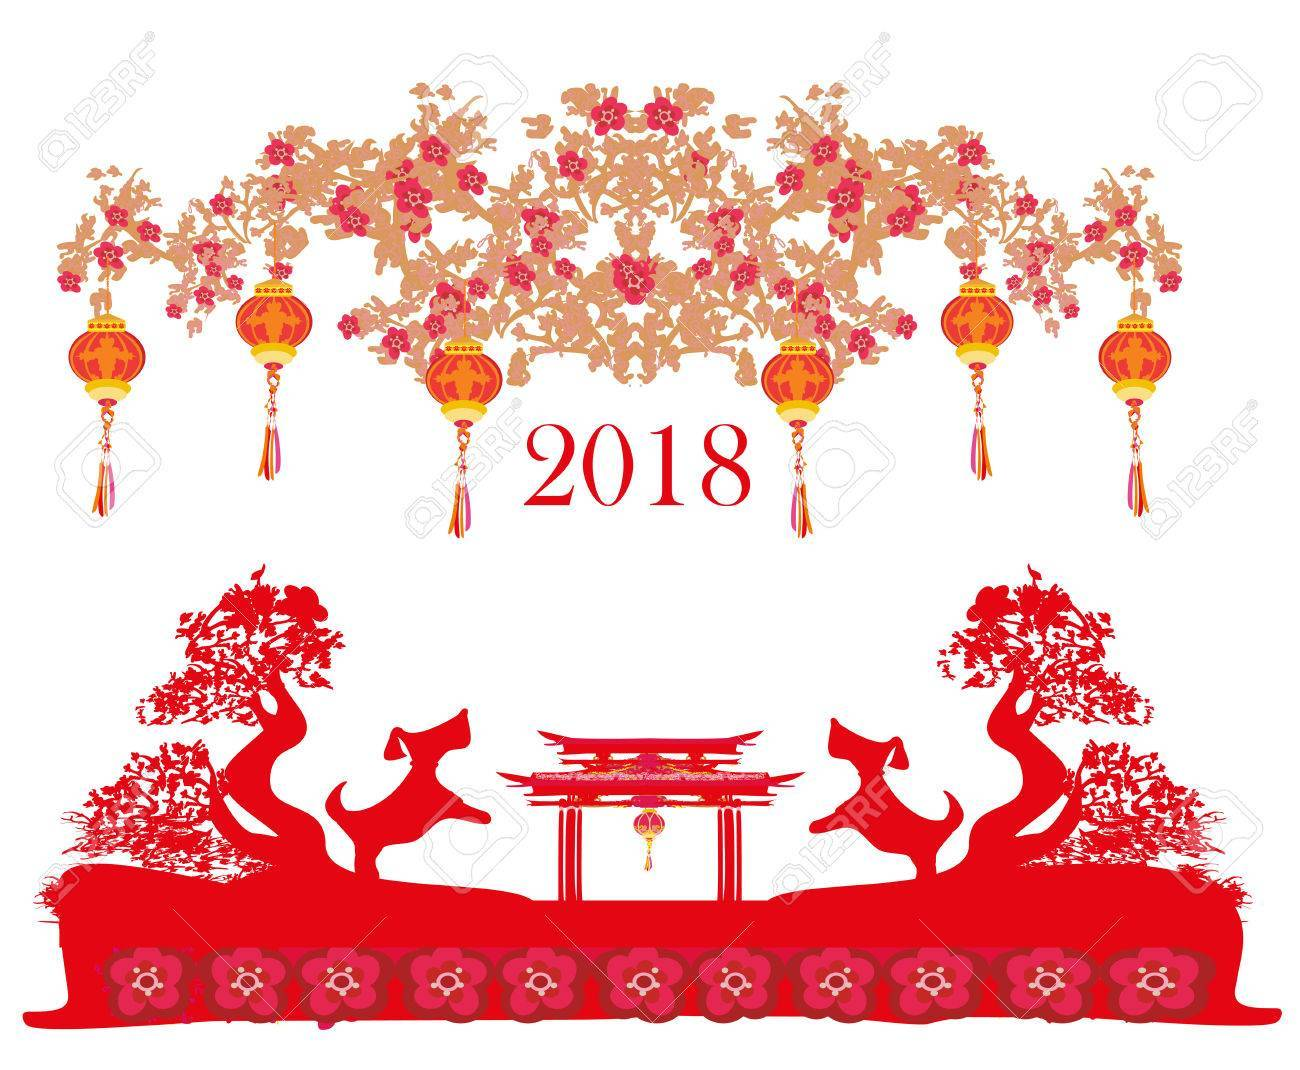 Happy Chinese new year 2018 card, year of the dog » Clipart Portal.